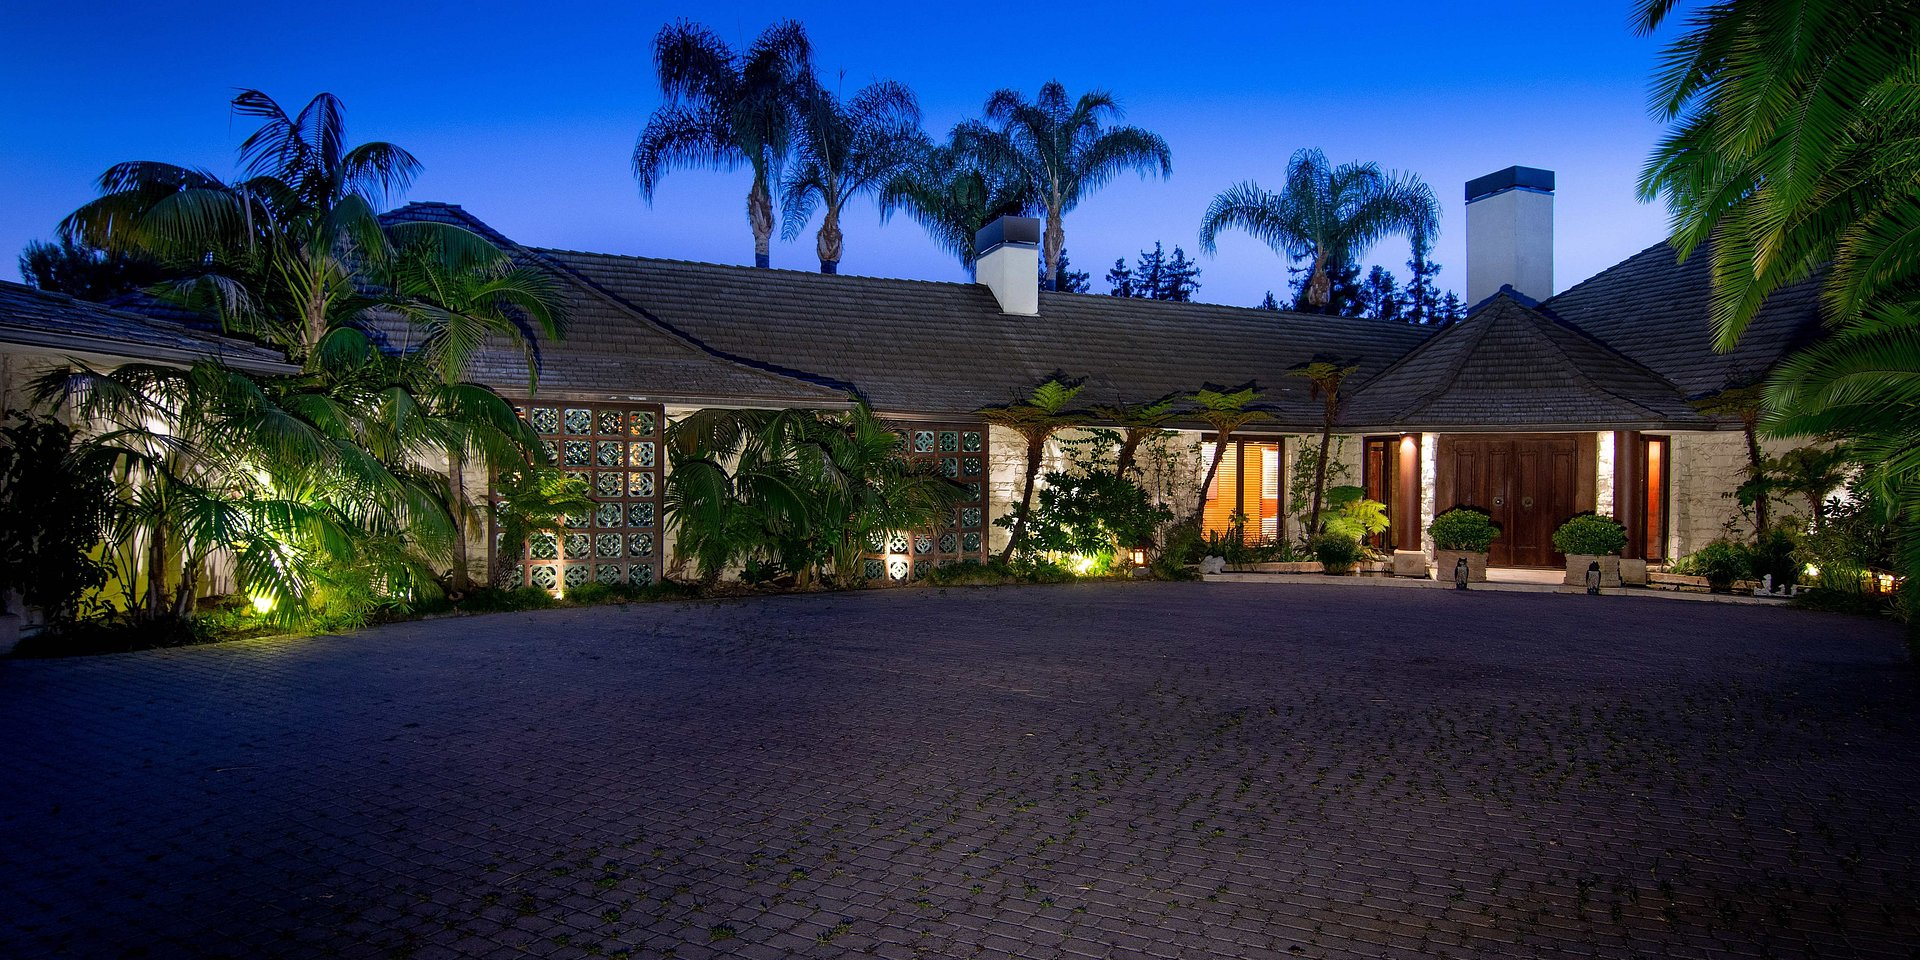 Coldwell Banker Residential Brokerage Lists Cheryl Tiegs' Bel Air Home for $18.5 Million